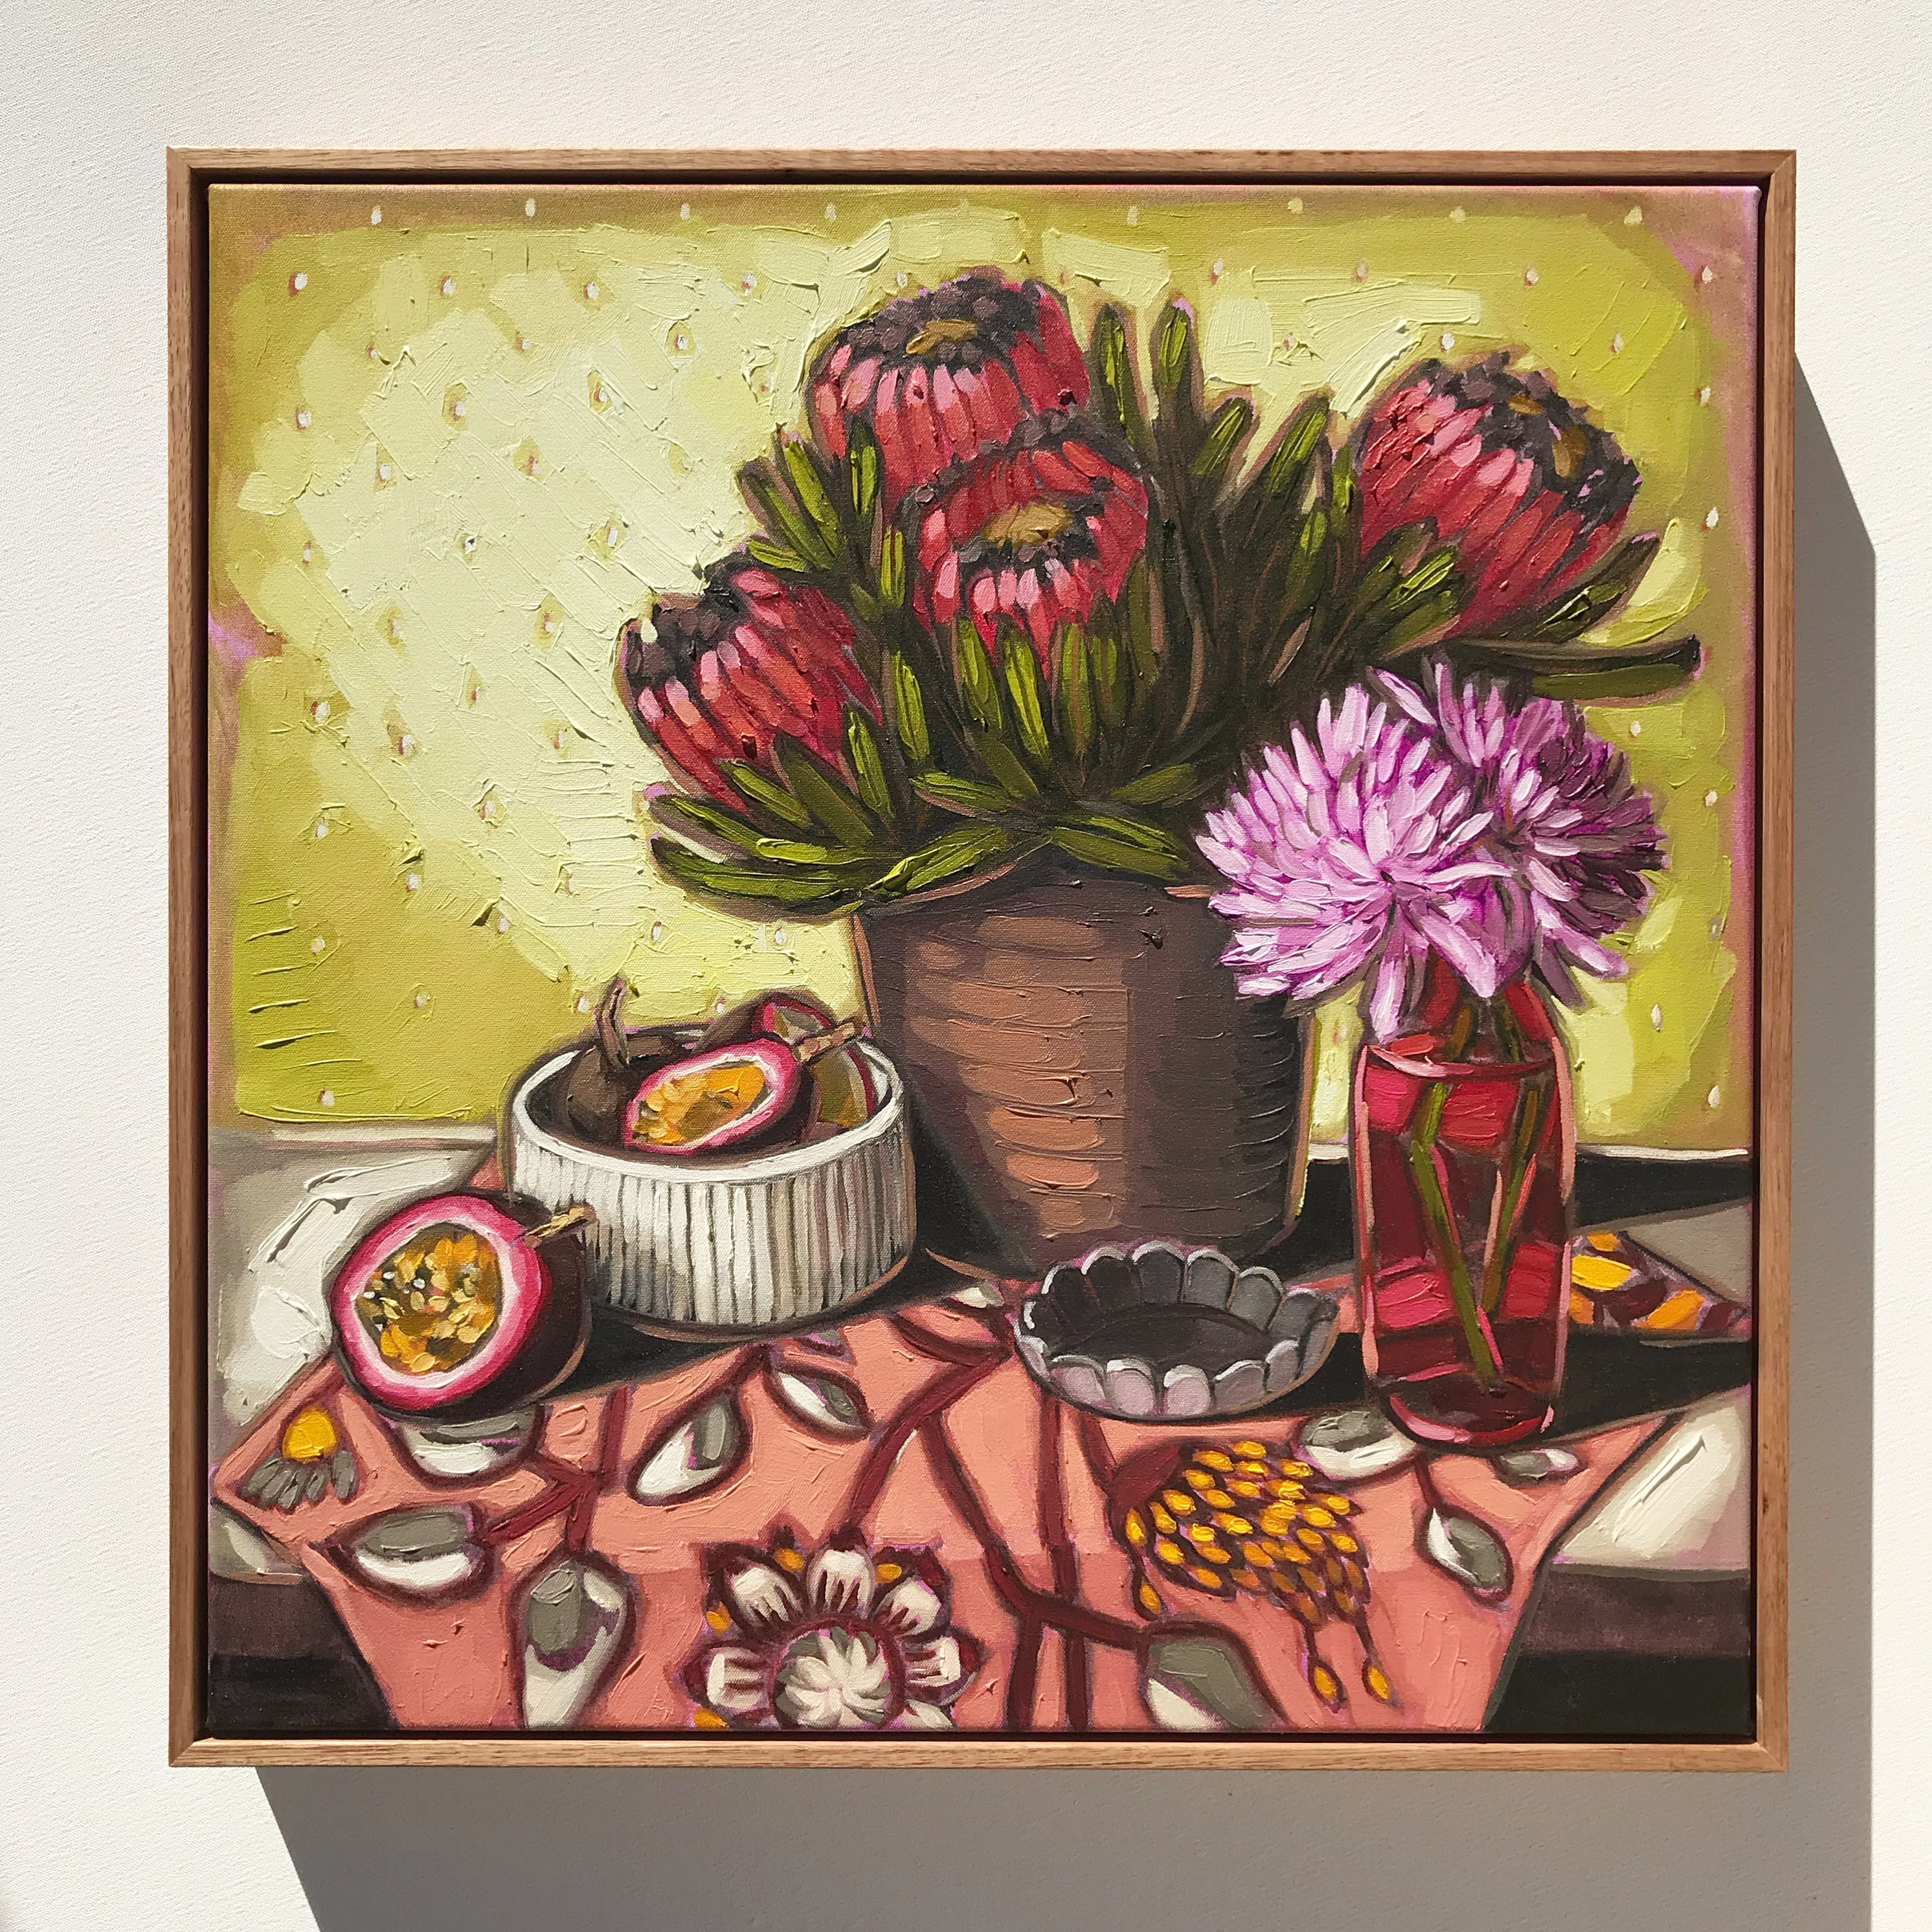 Sam Michelle ' Proteas & Passion Fruit' 53x53cm